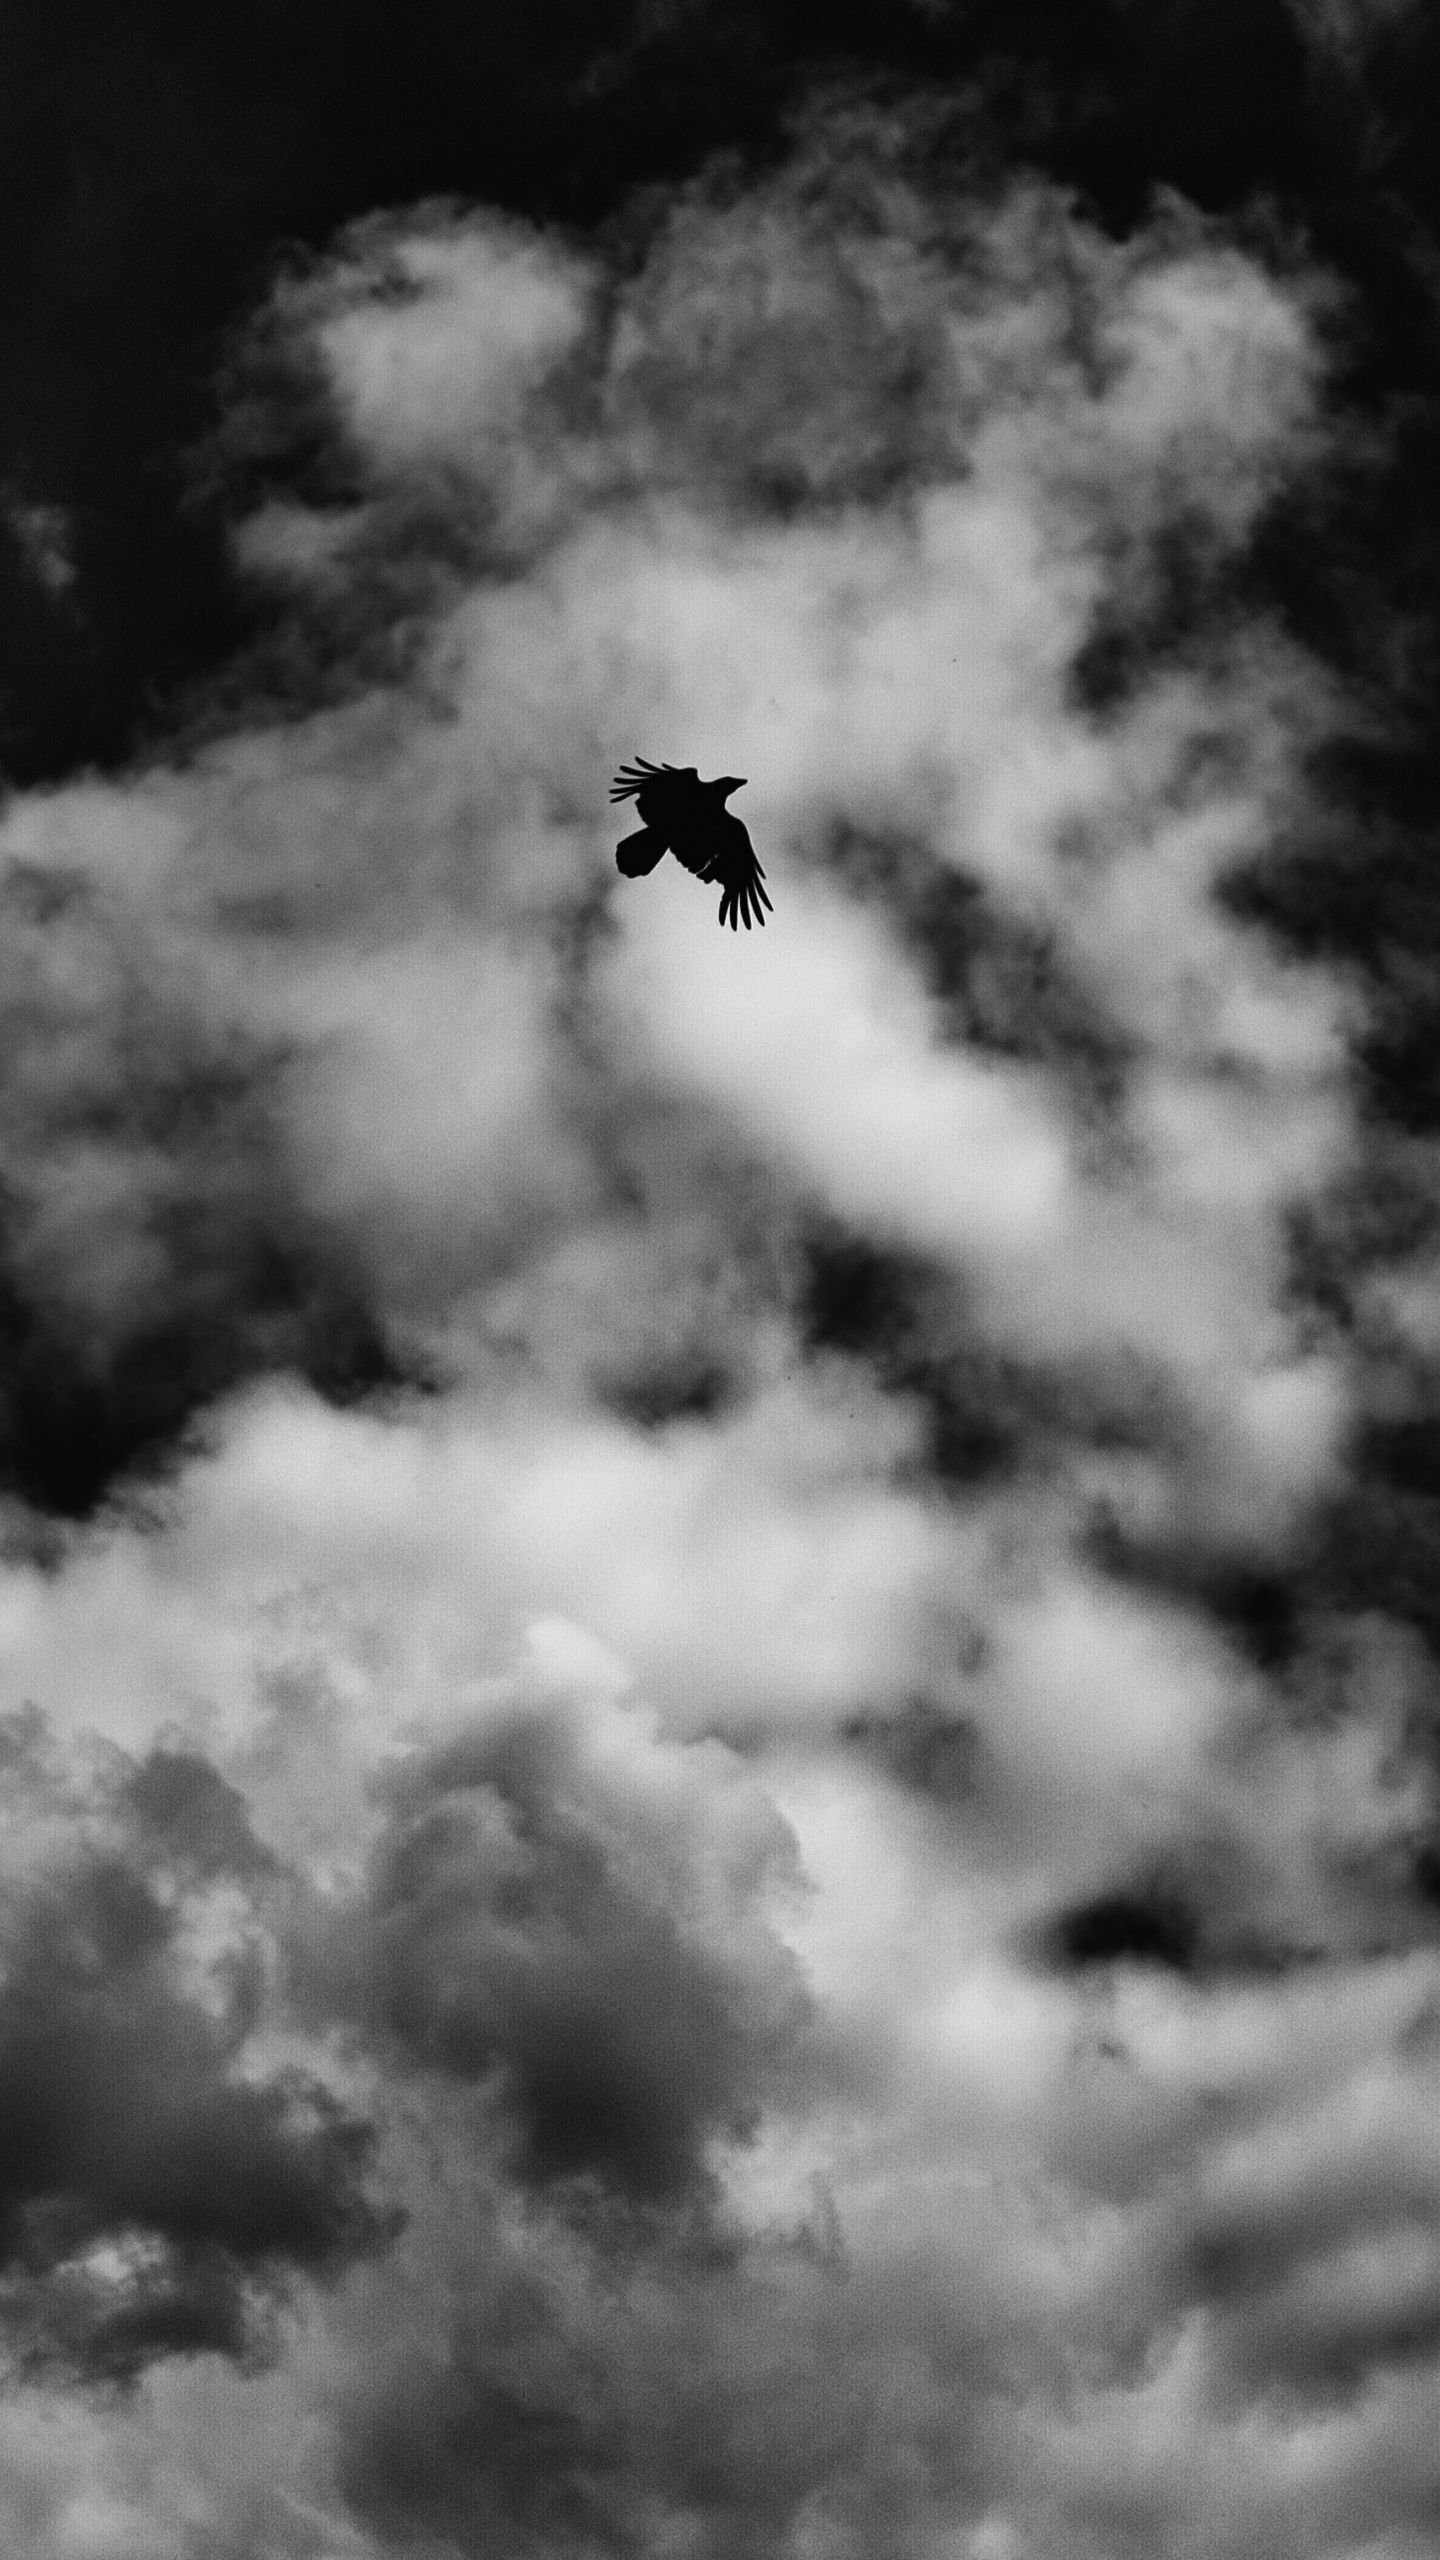 See My Collection Of Great Iphone And Android Bird Wallpapers And Background Images In Ultra High Defini Black Wallpaper Black And White Wallpaper White Iphone